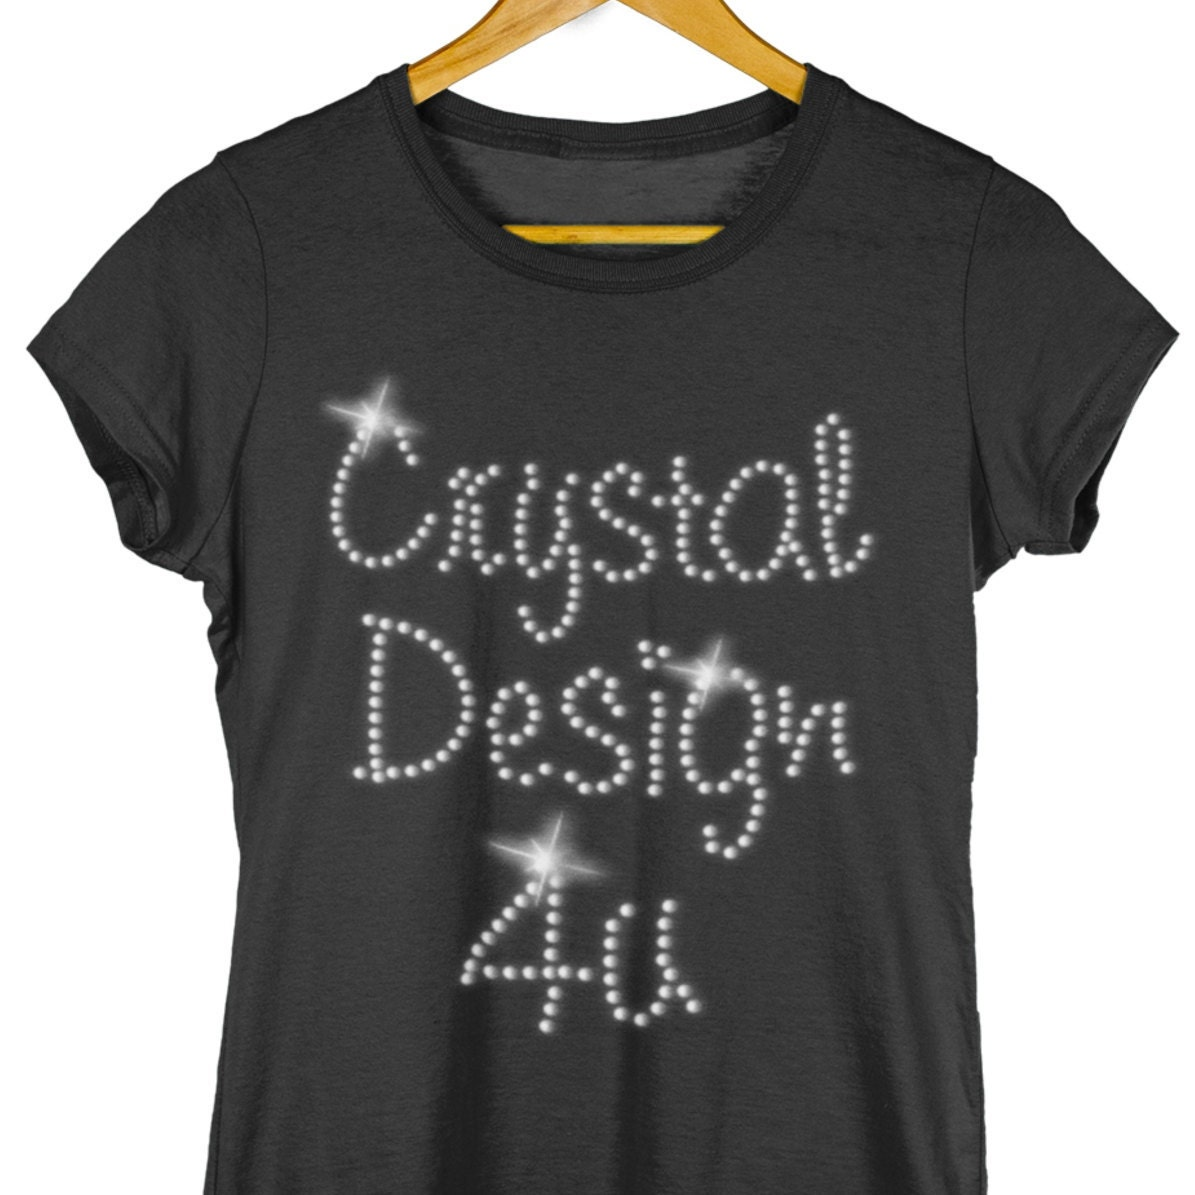 ROCK ON GUITAR DESIGN FITTED  LADIES T SHIRT WITH RHINESTUDS ANY SIZES